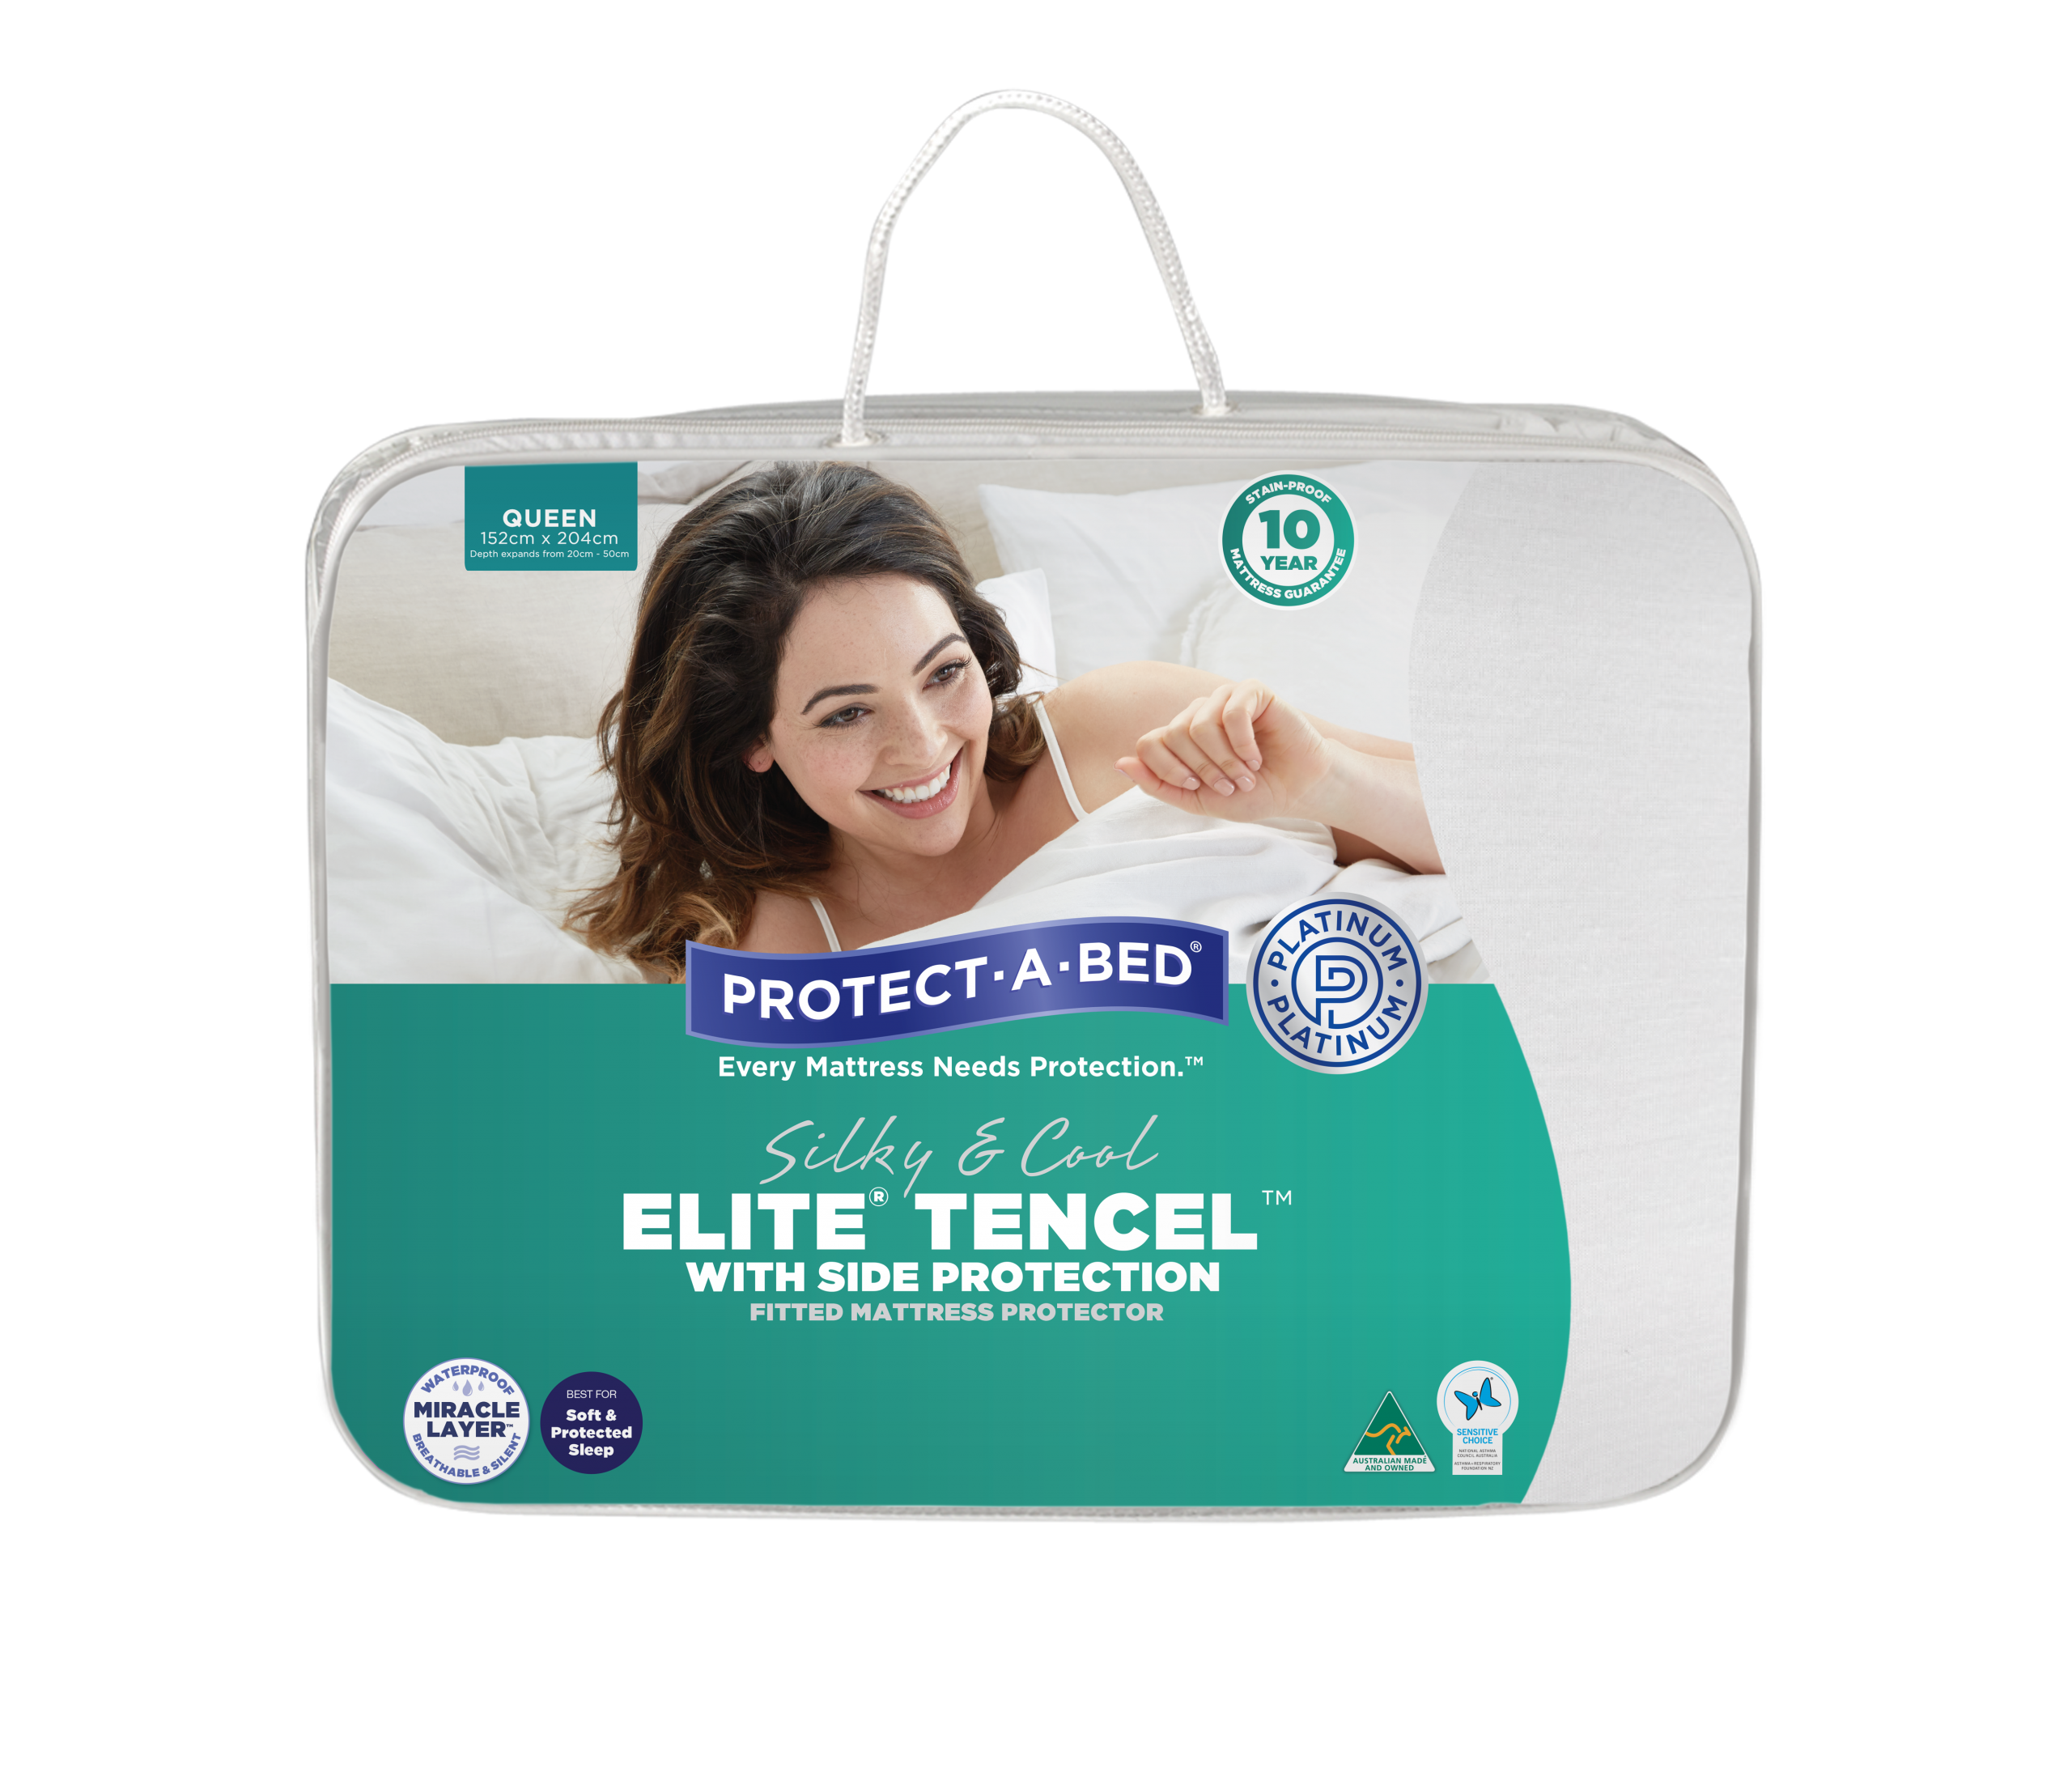 Elite® Tencel™ with Side Protection Fitted Mattress Protector